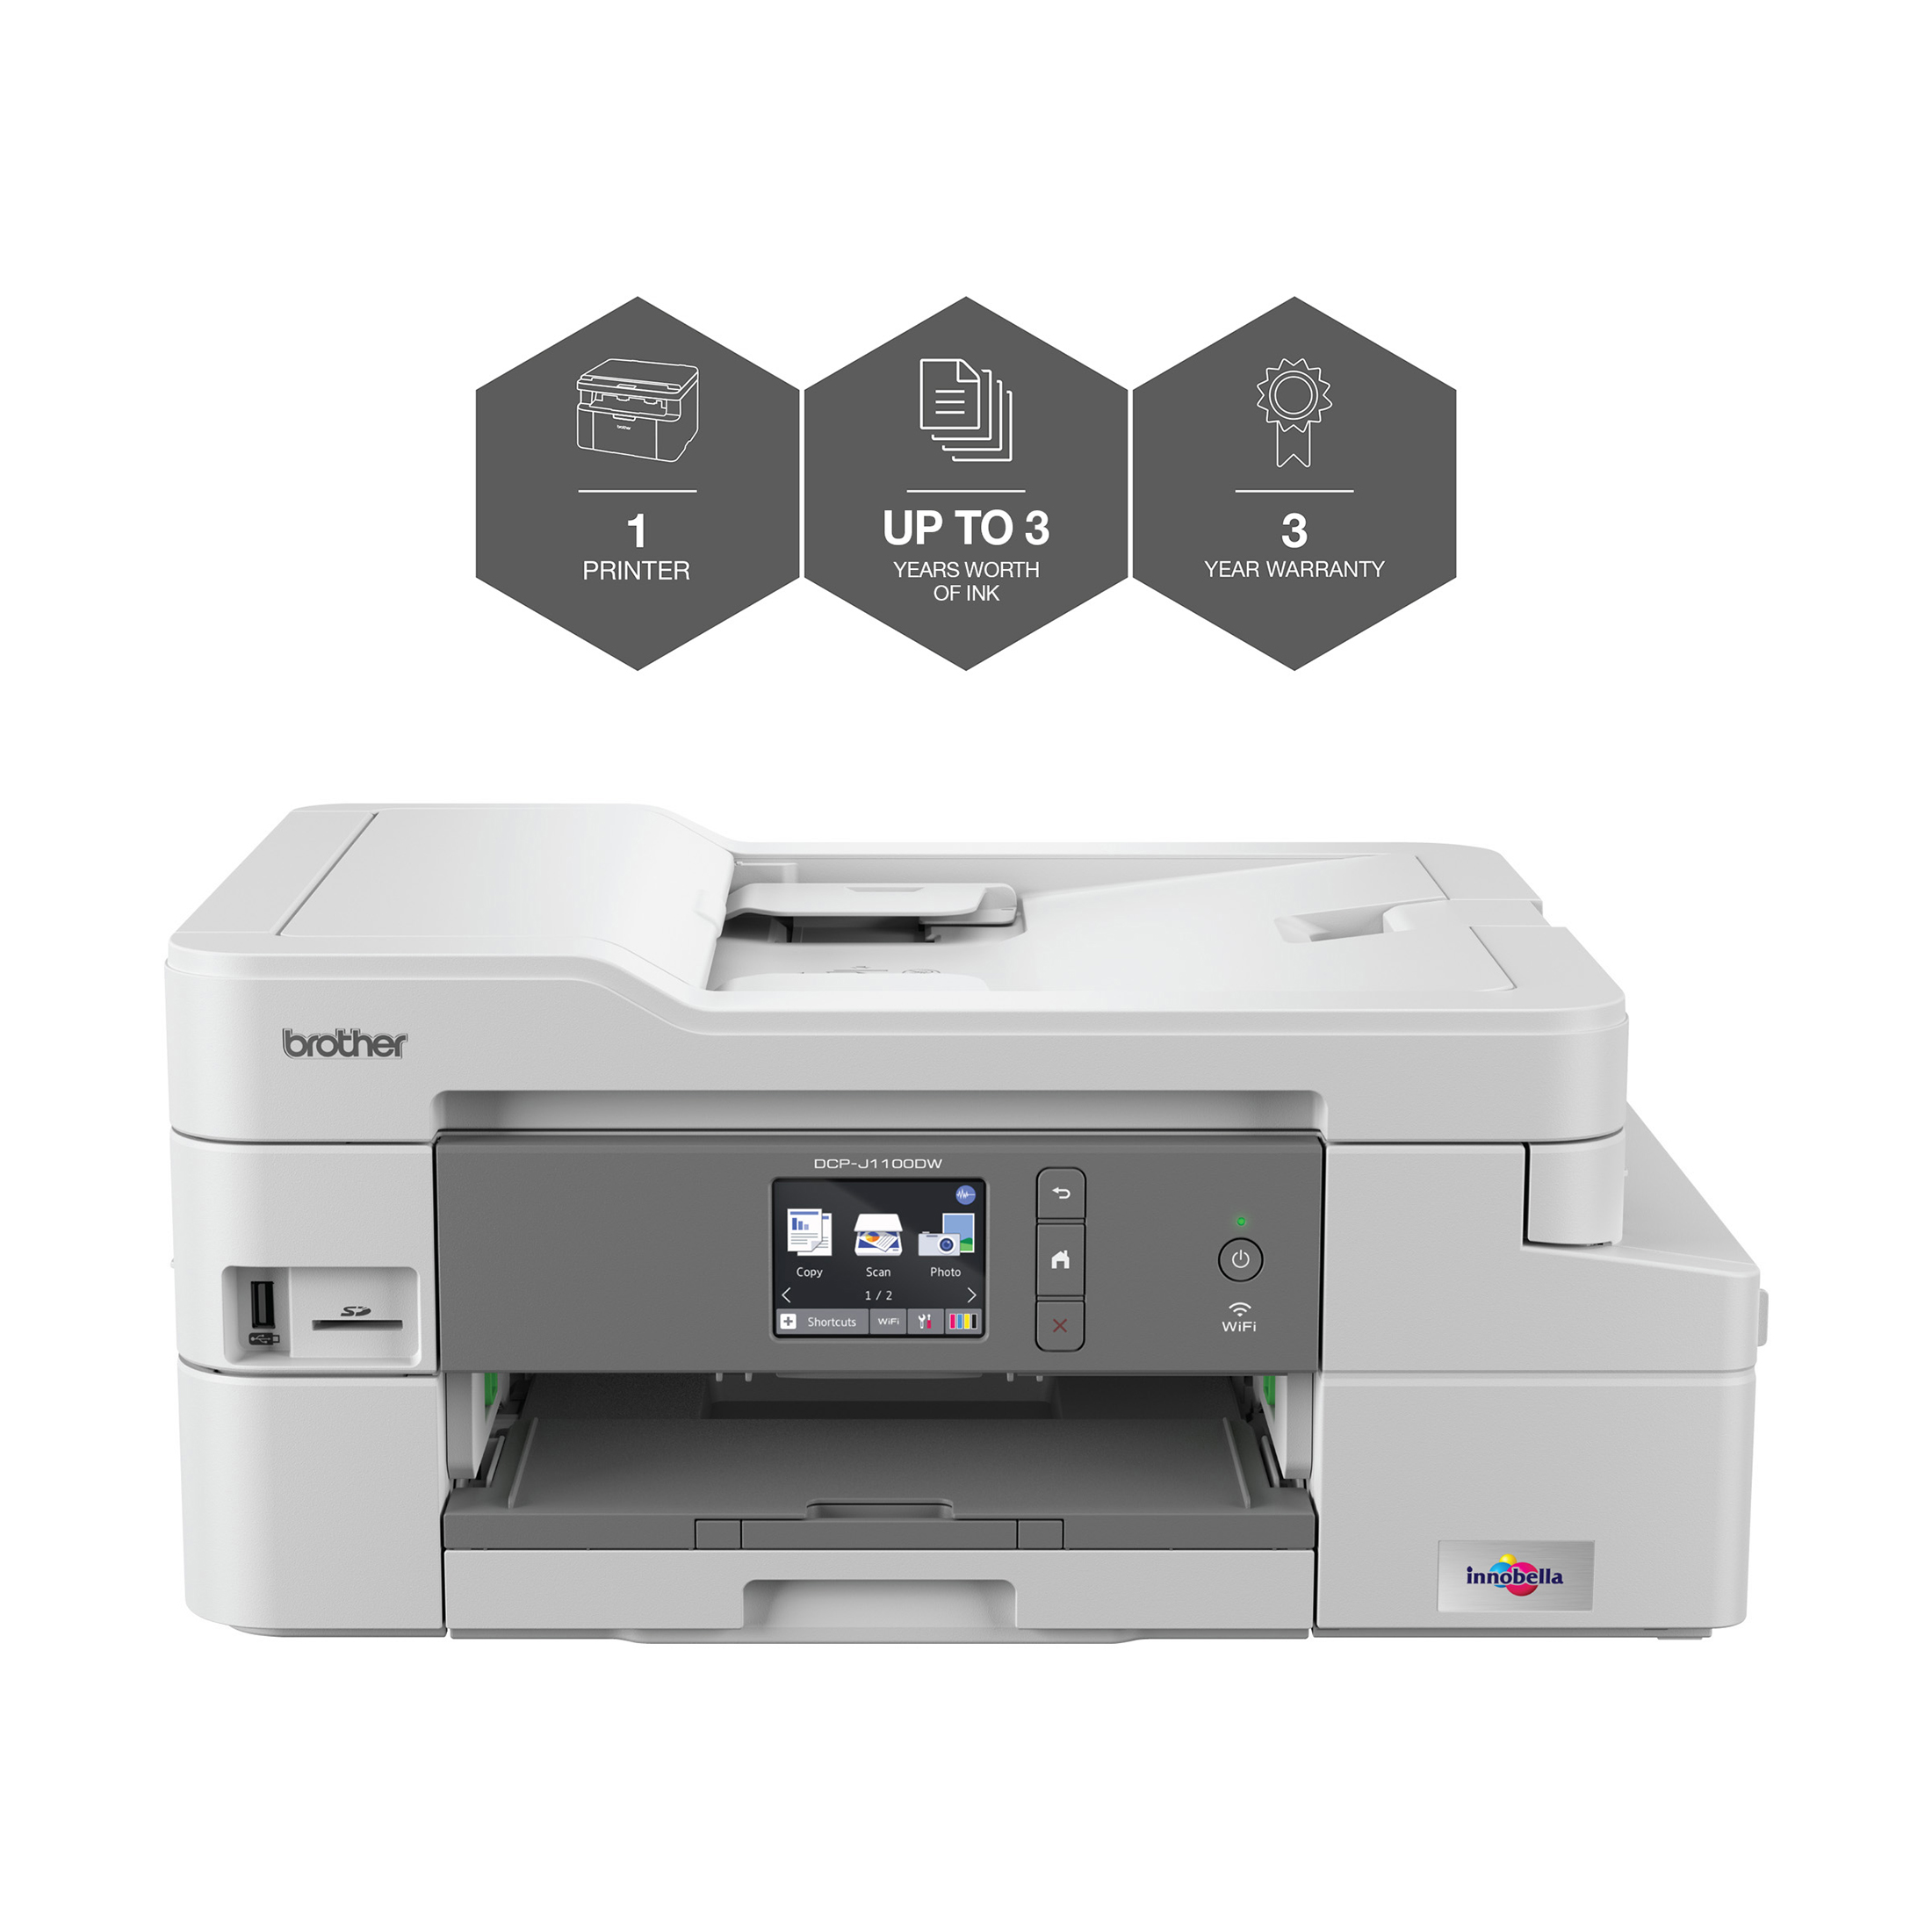 Multifunctional Machines Brother DCPJ1100DW All-in-Box Inkjet Printer Ref DCPJ1100DWZU1